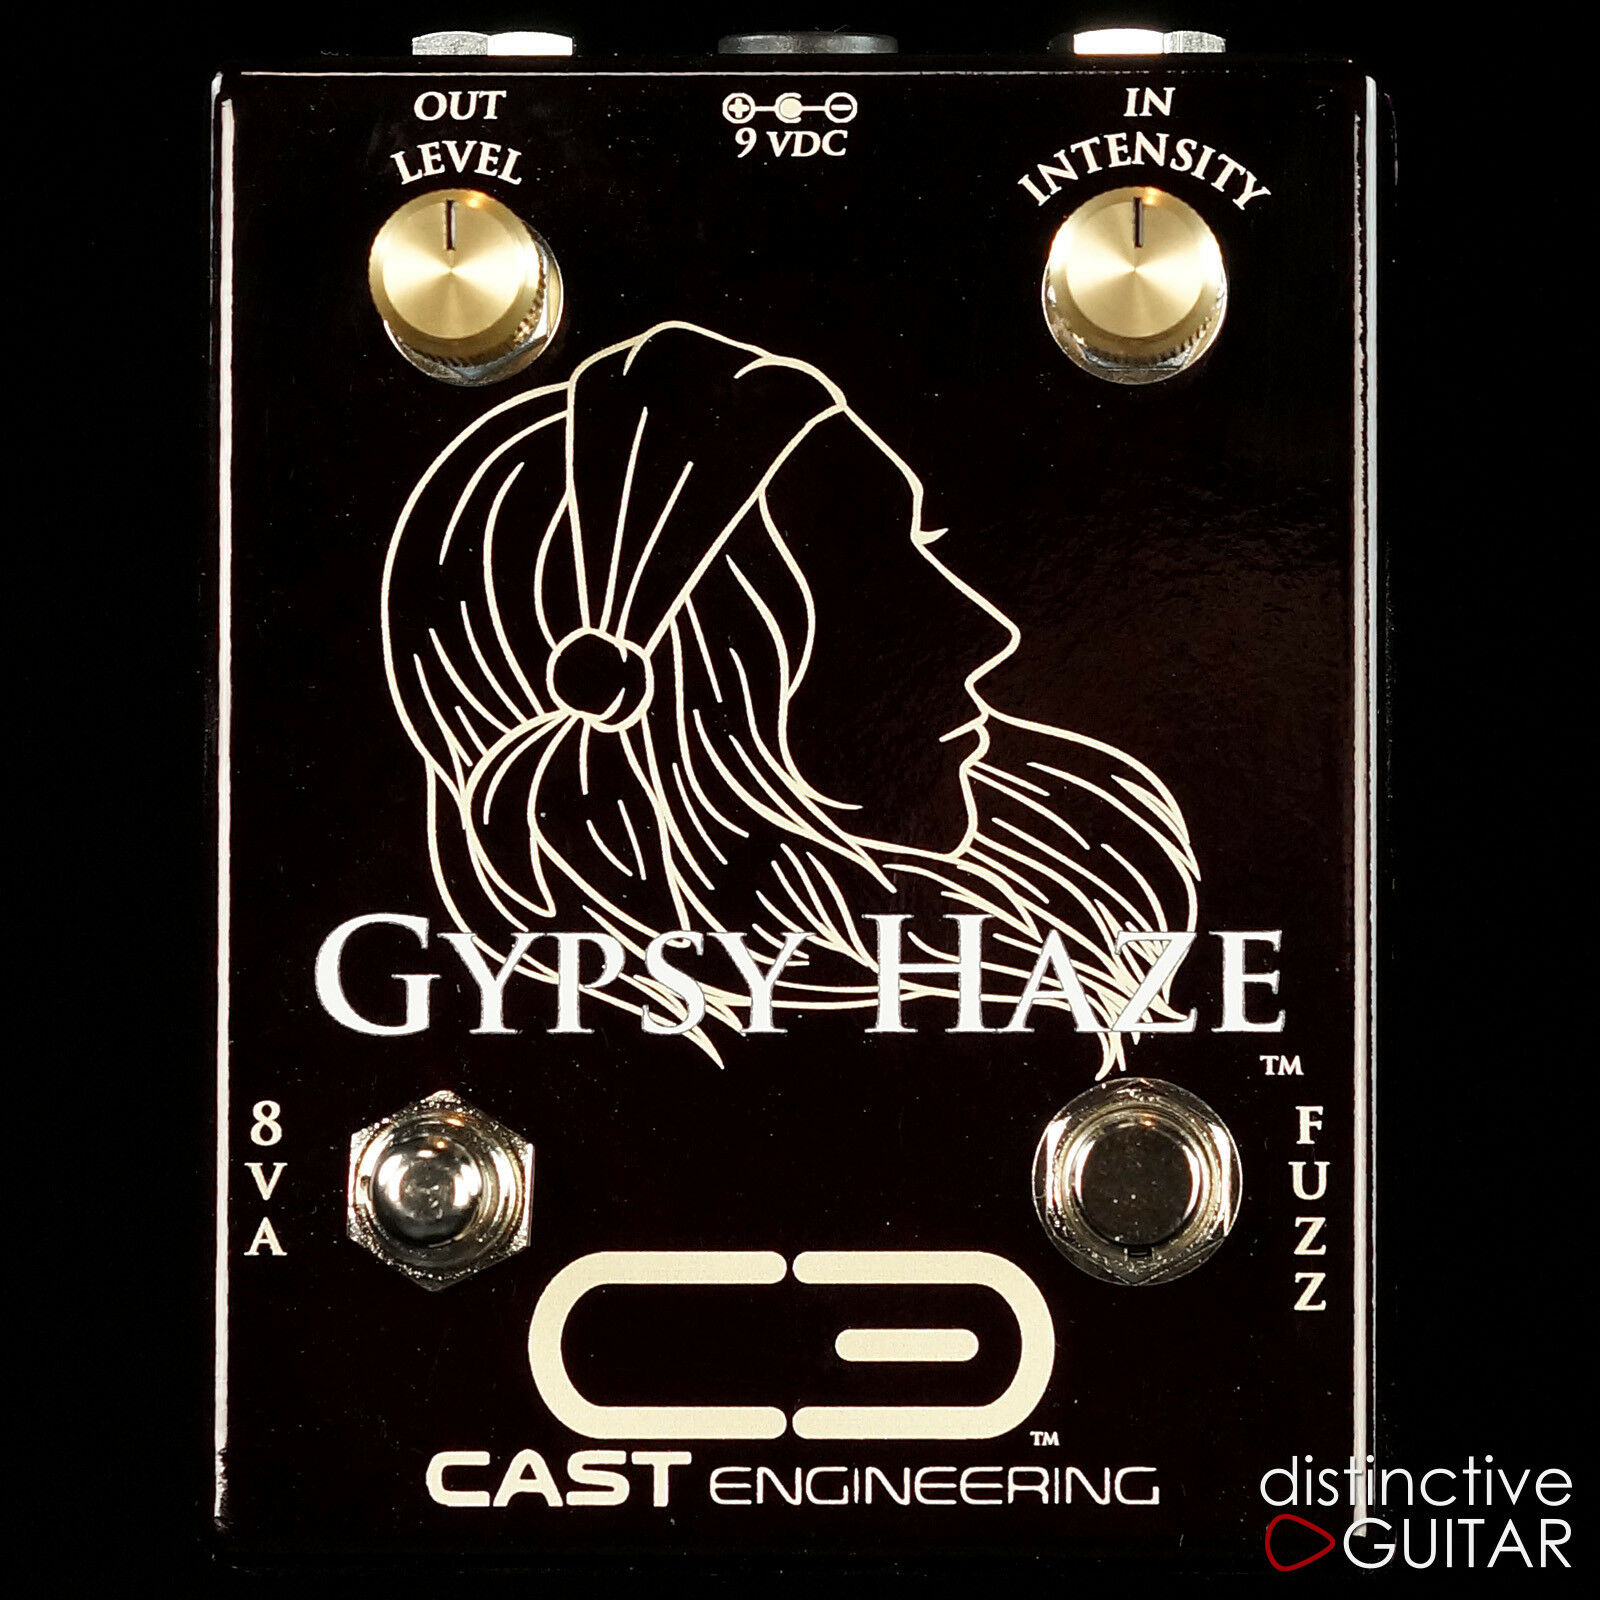 NEW CAST ENGINEERING GYPSY HAZE FUZZ GUITAR EFFECTS PEDAL DISTORTION